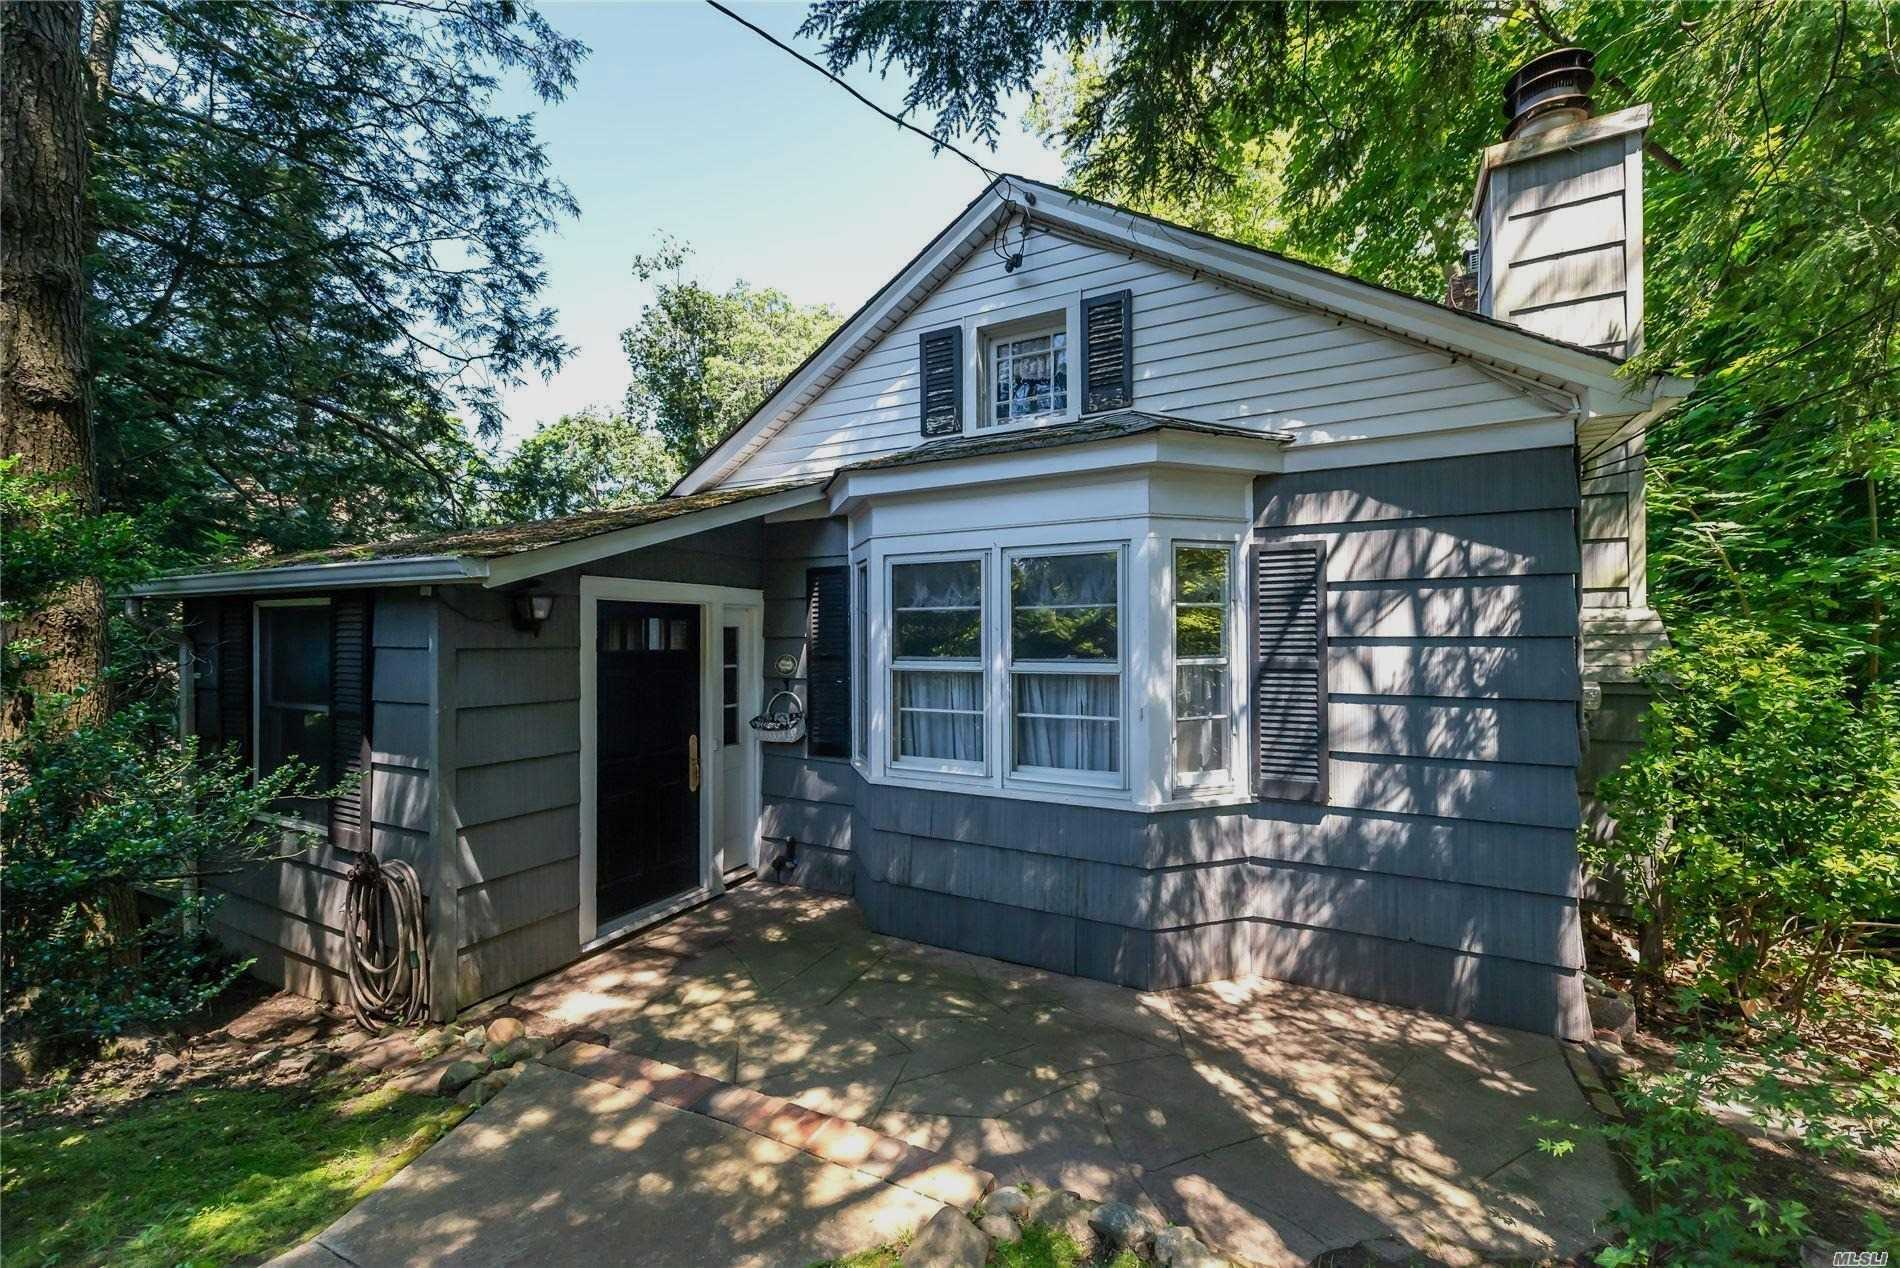 Prof'l. Pix Coming. 1/2 Acre. House Being Sold As Is. Cash Buyer Needed. No CO's. Many Possibilities. Good Scale-Down or Add a Second Story. Full Attic Front to Back. Natural Gas in the House. Driveway in Rear of House Off Schoolhouse Lane.